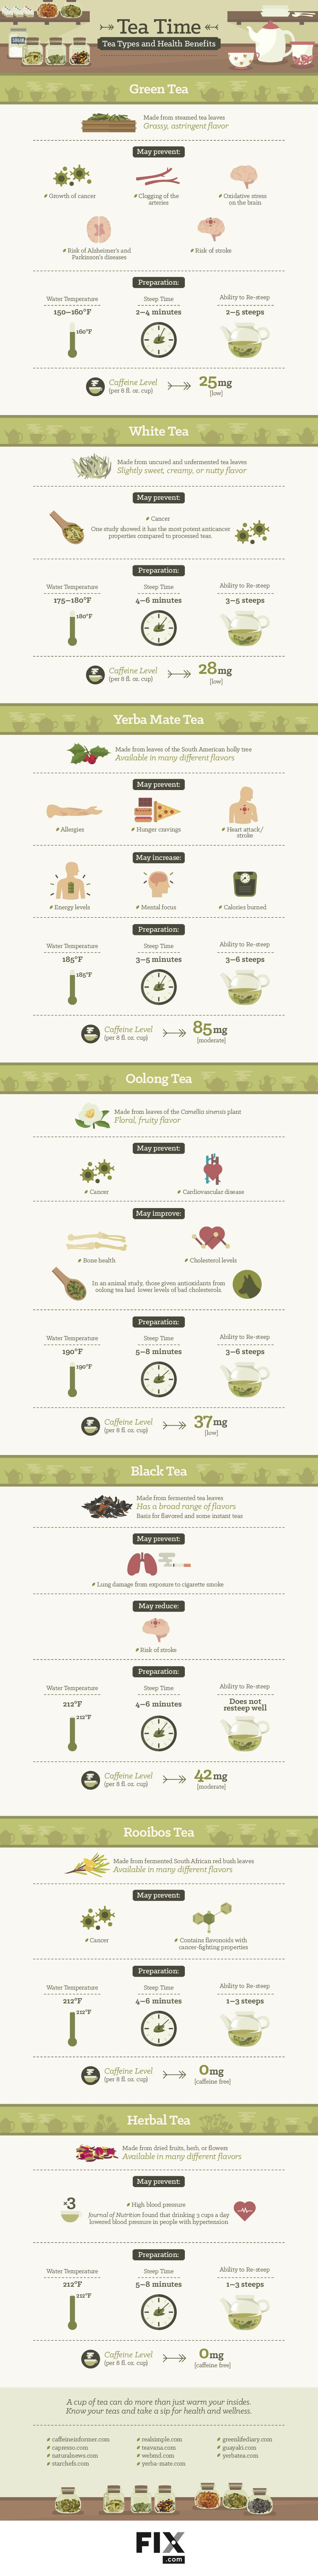 Tea Time Types of Tea and Their Health Benefits #infographic